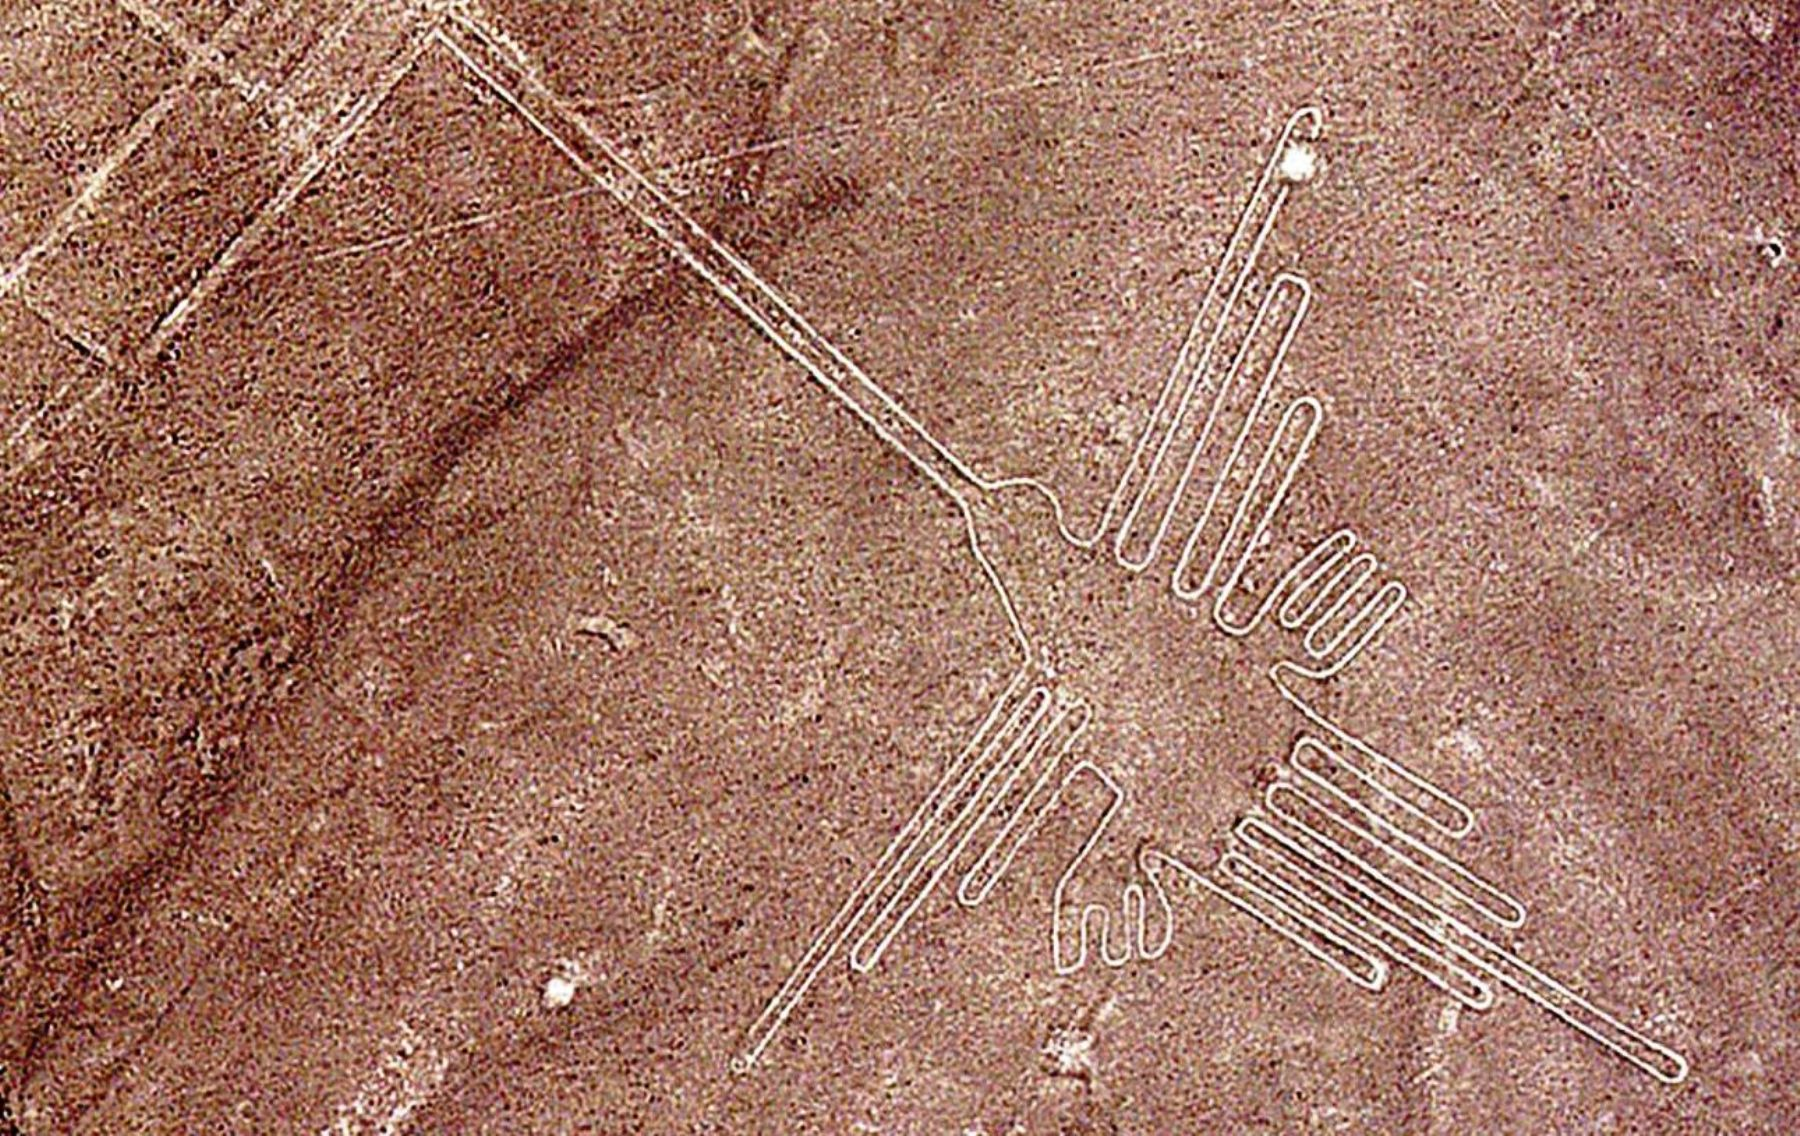 The Mysterious Nazca Lines.